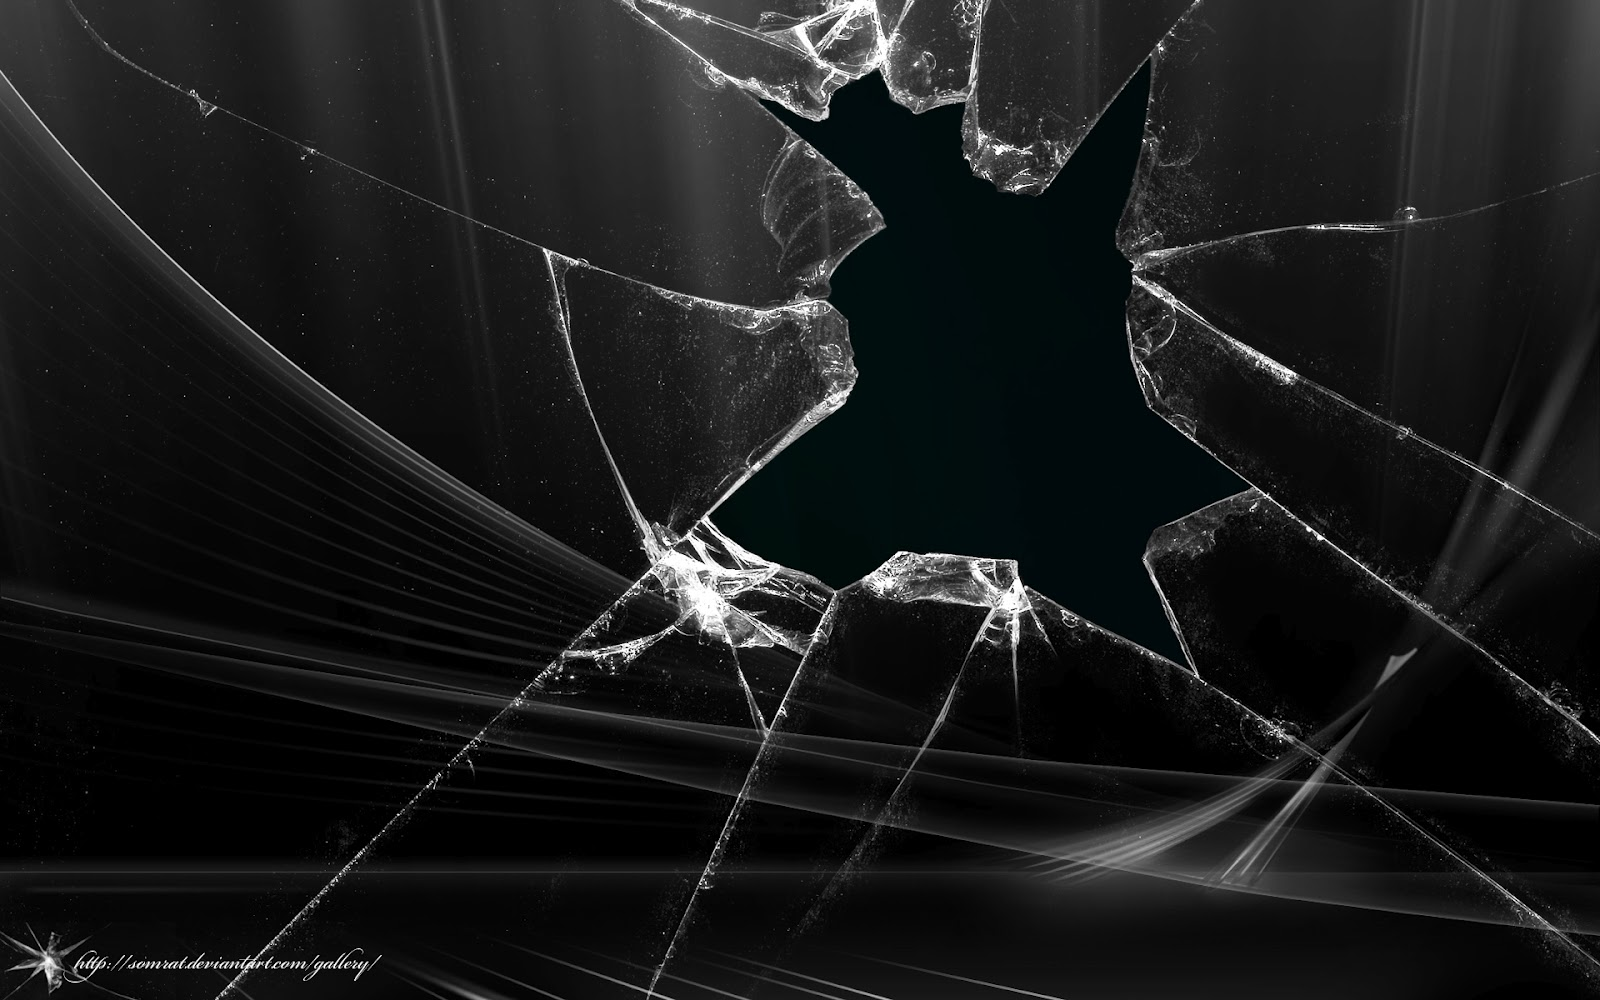 SamFordphotol3csc: Photoshop - Dramatic broken glass ...